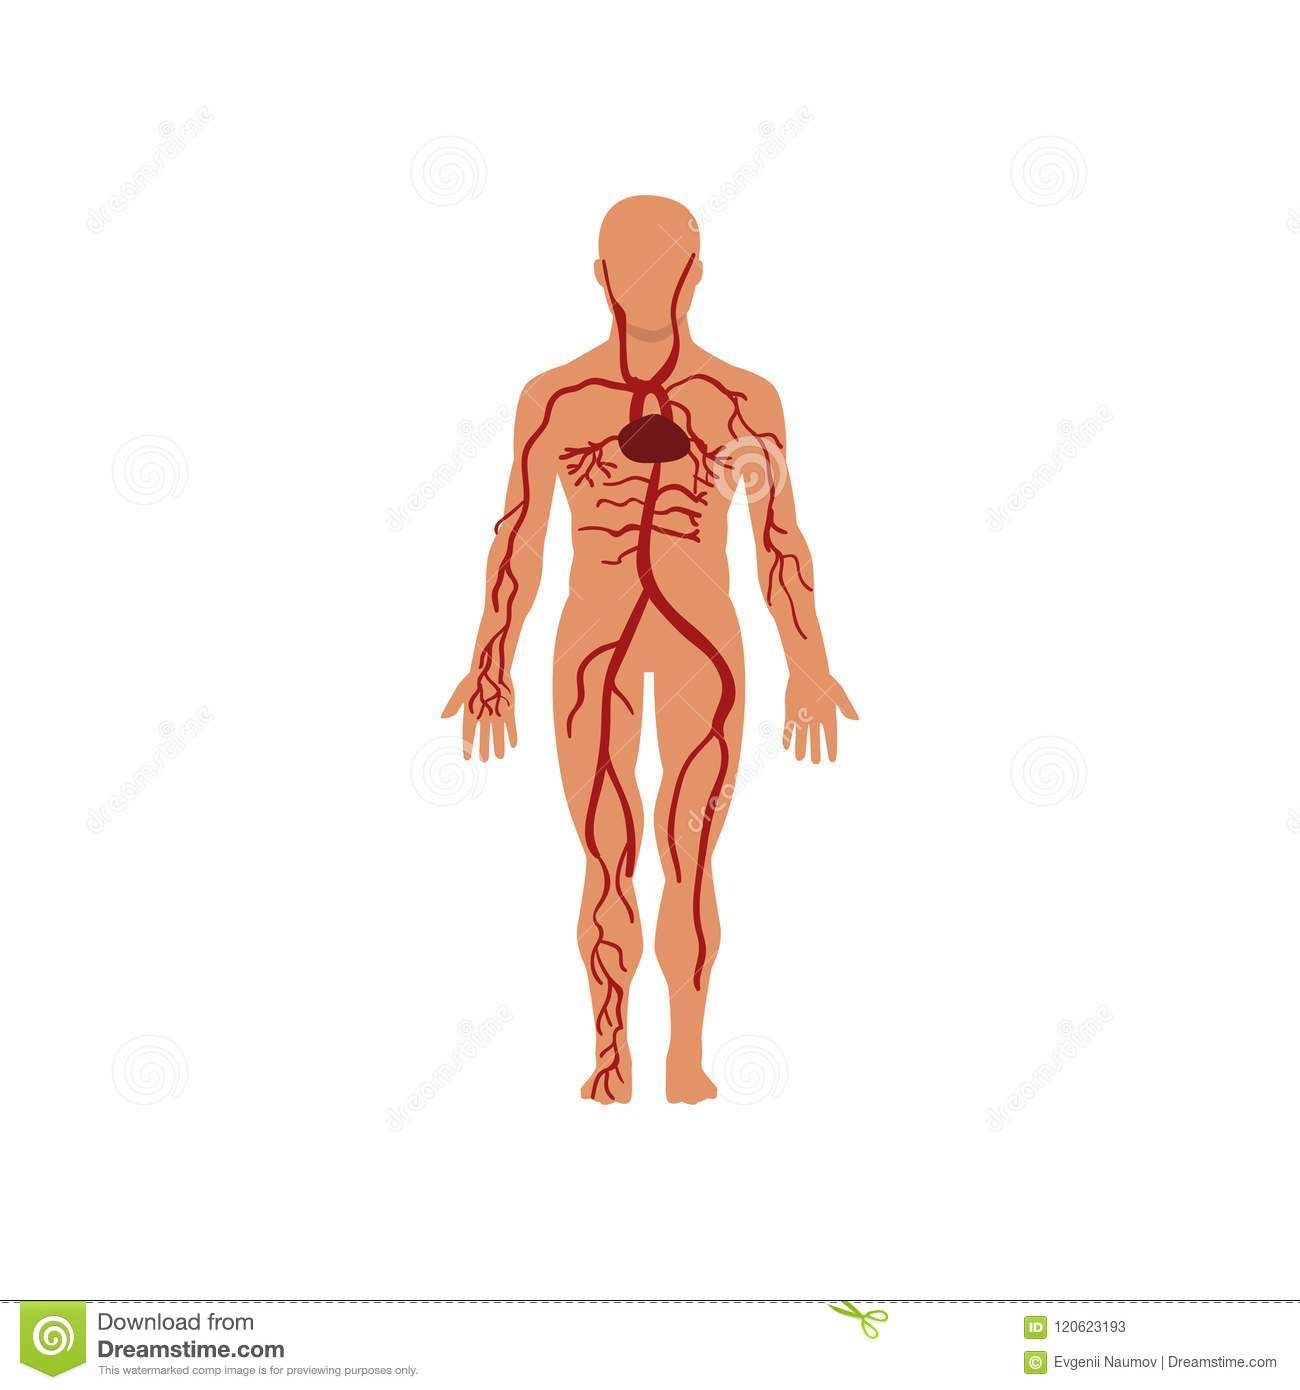 human circulatory system anatomy of human body vector illustration on a white background stock vector illustration of health body 120623193 https www dreamstime com human circulatory system anatomy human body vector illustration white background human circulatory system anatomy human image120623193